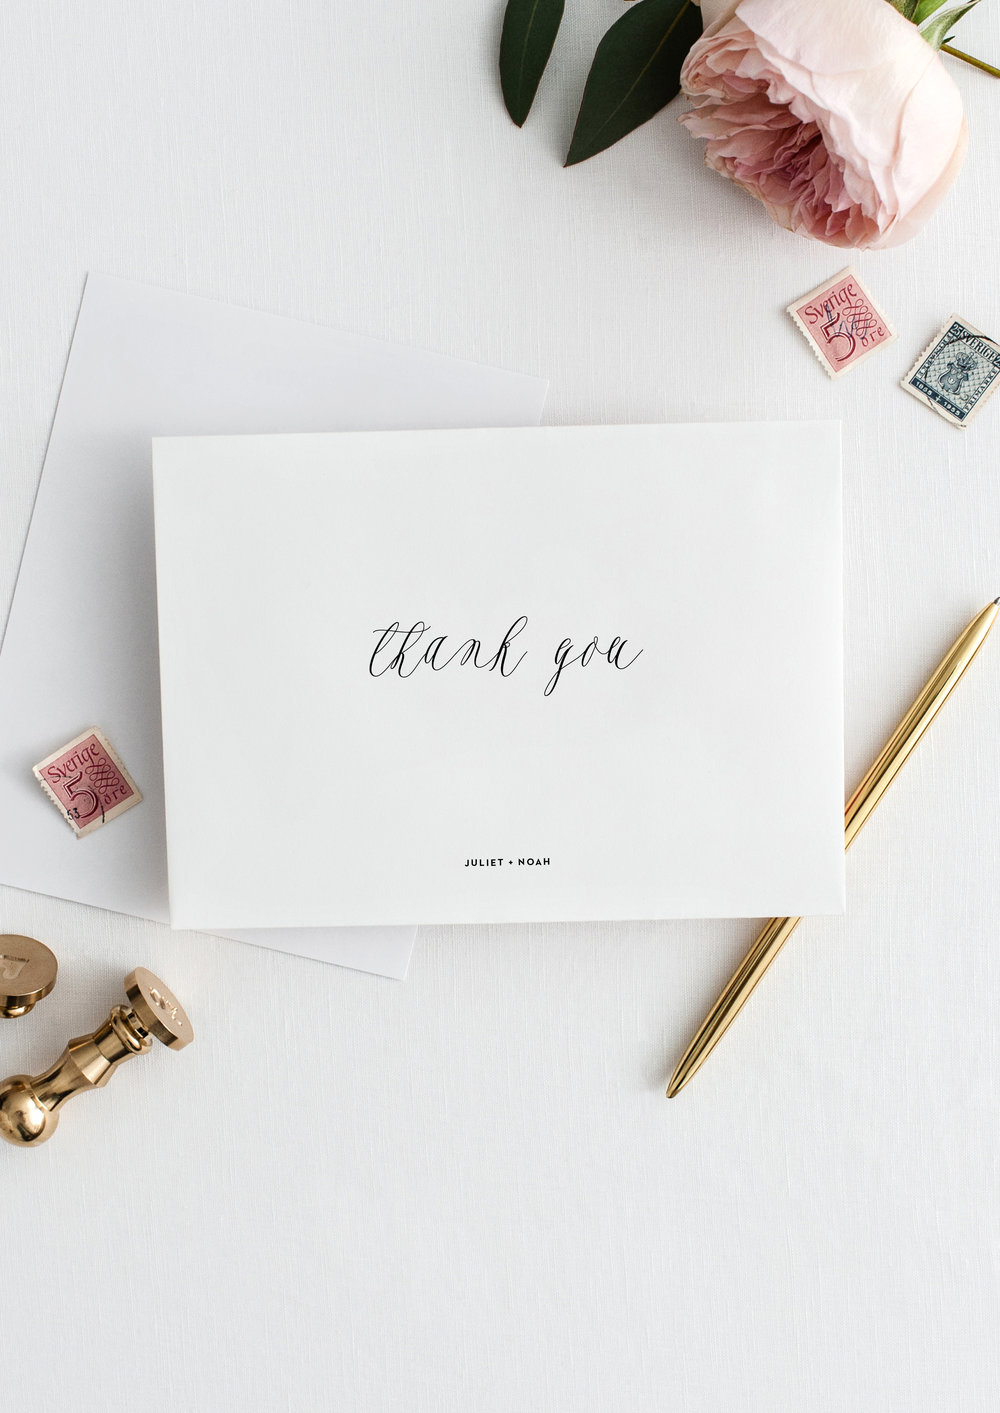 Juliet and Noah modern calligraphy wedding thank you notes